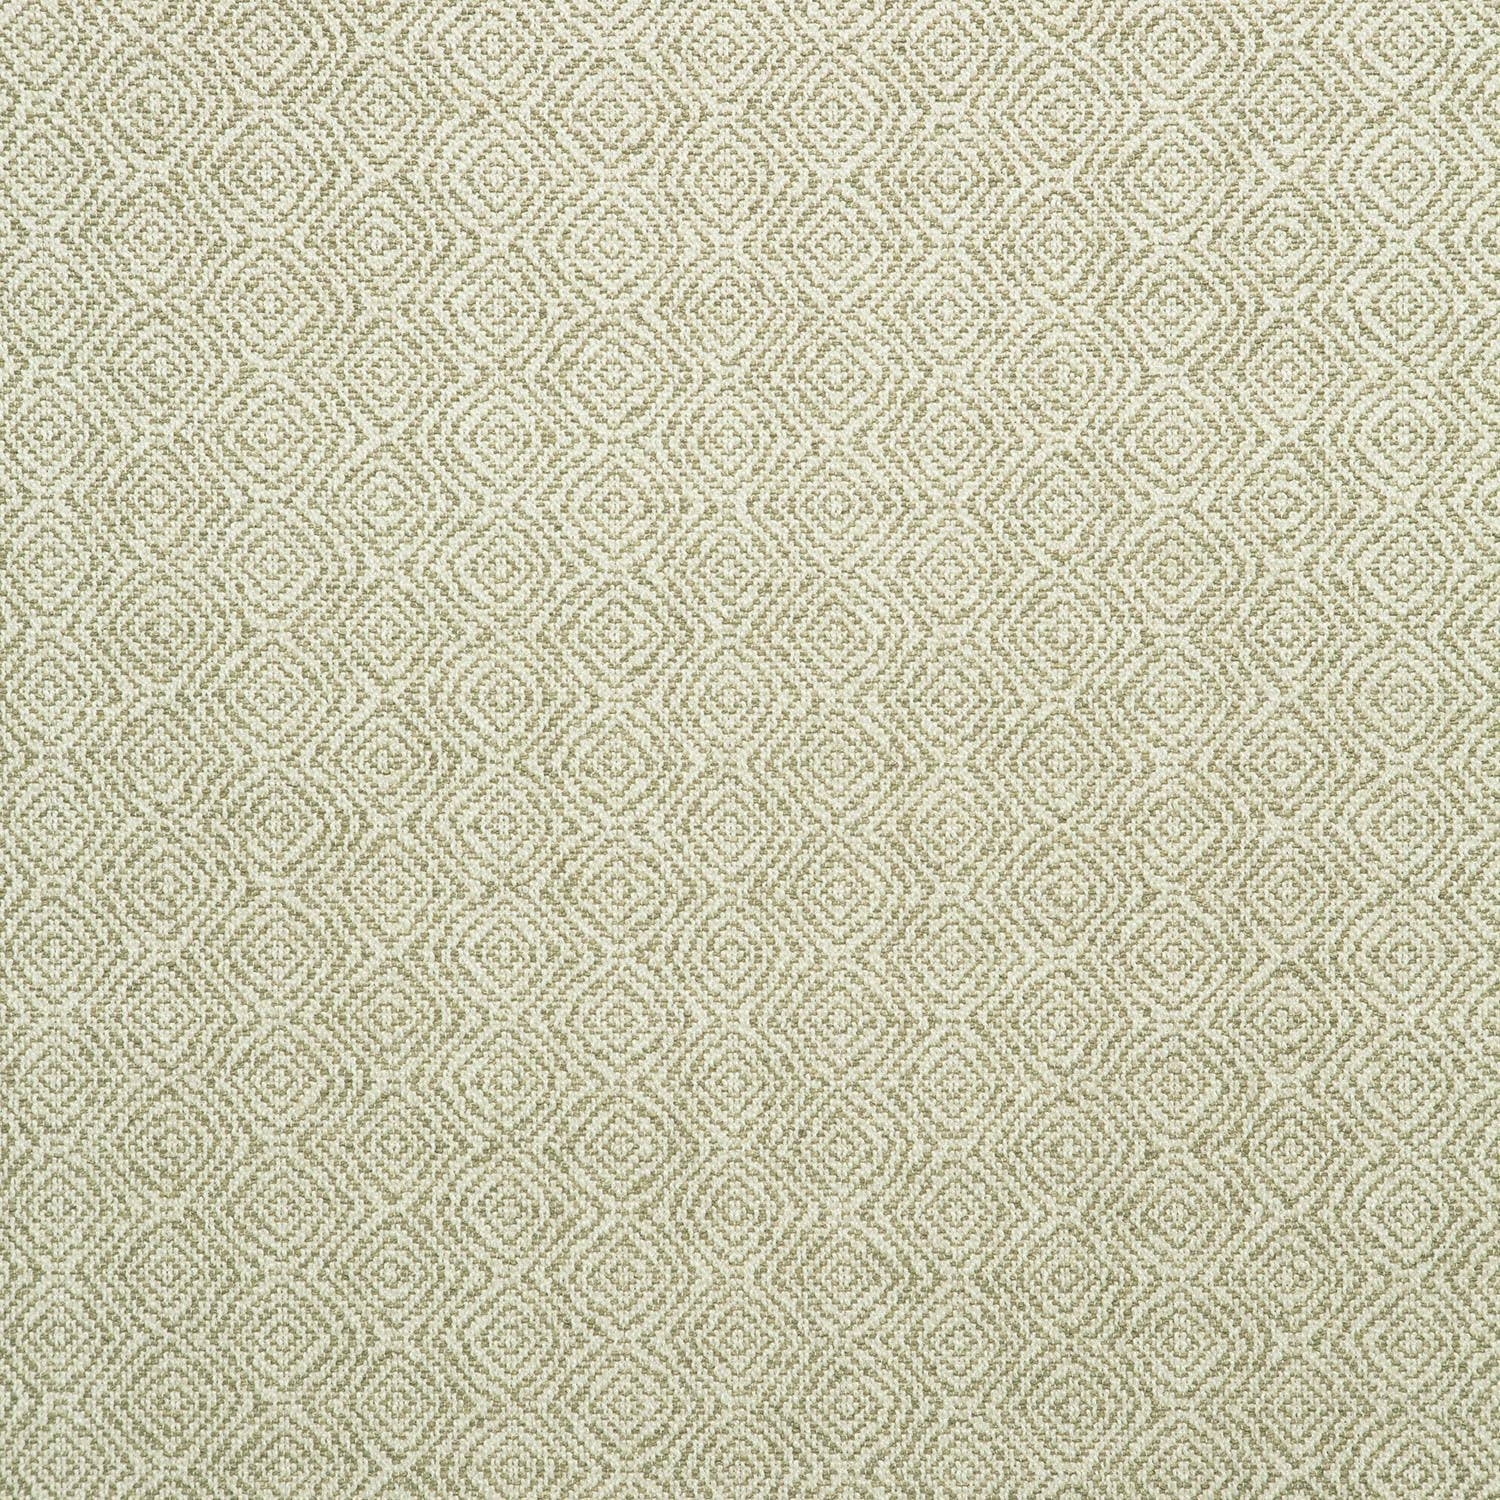 Fabric swatch of a neutral and white geometric weave fabric for upholstery